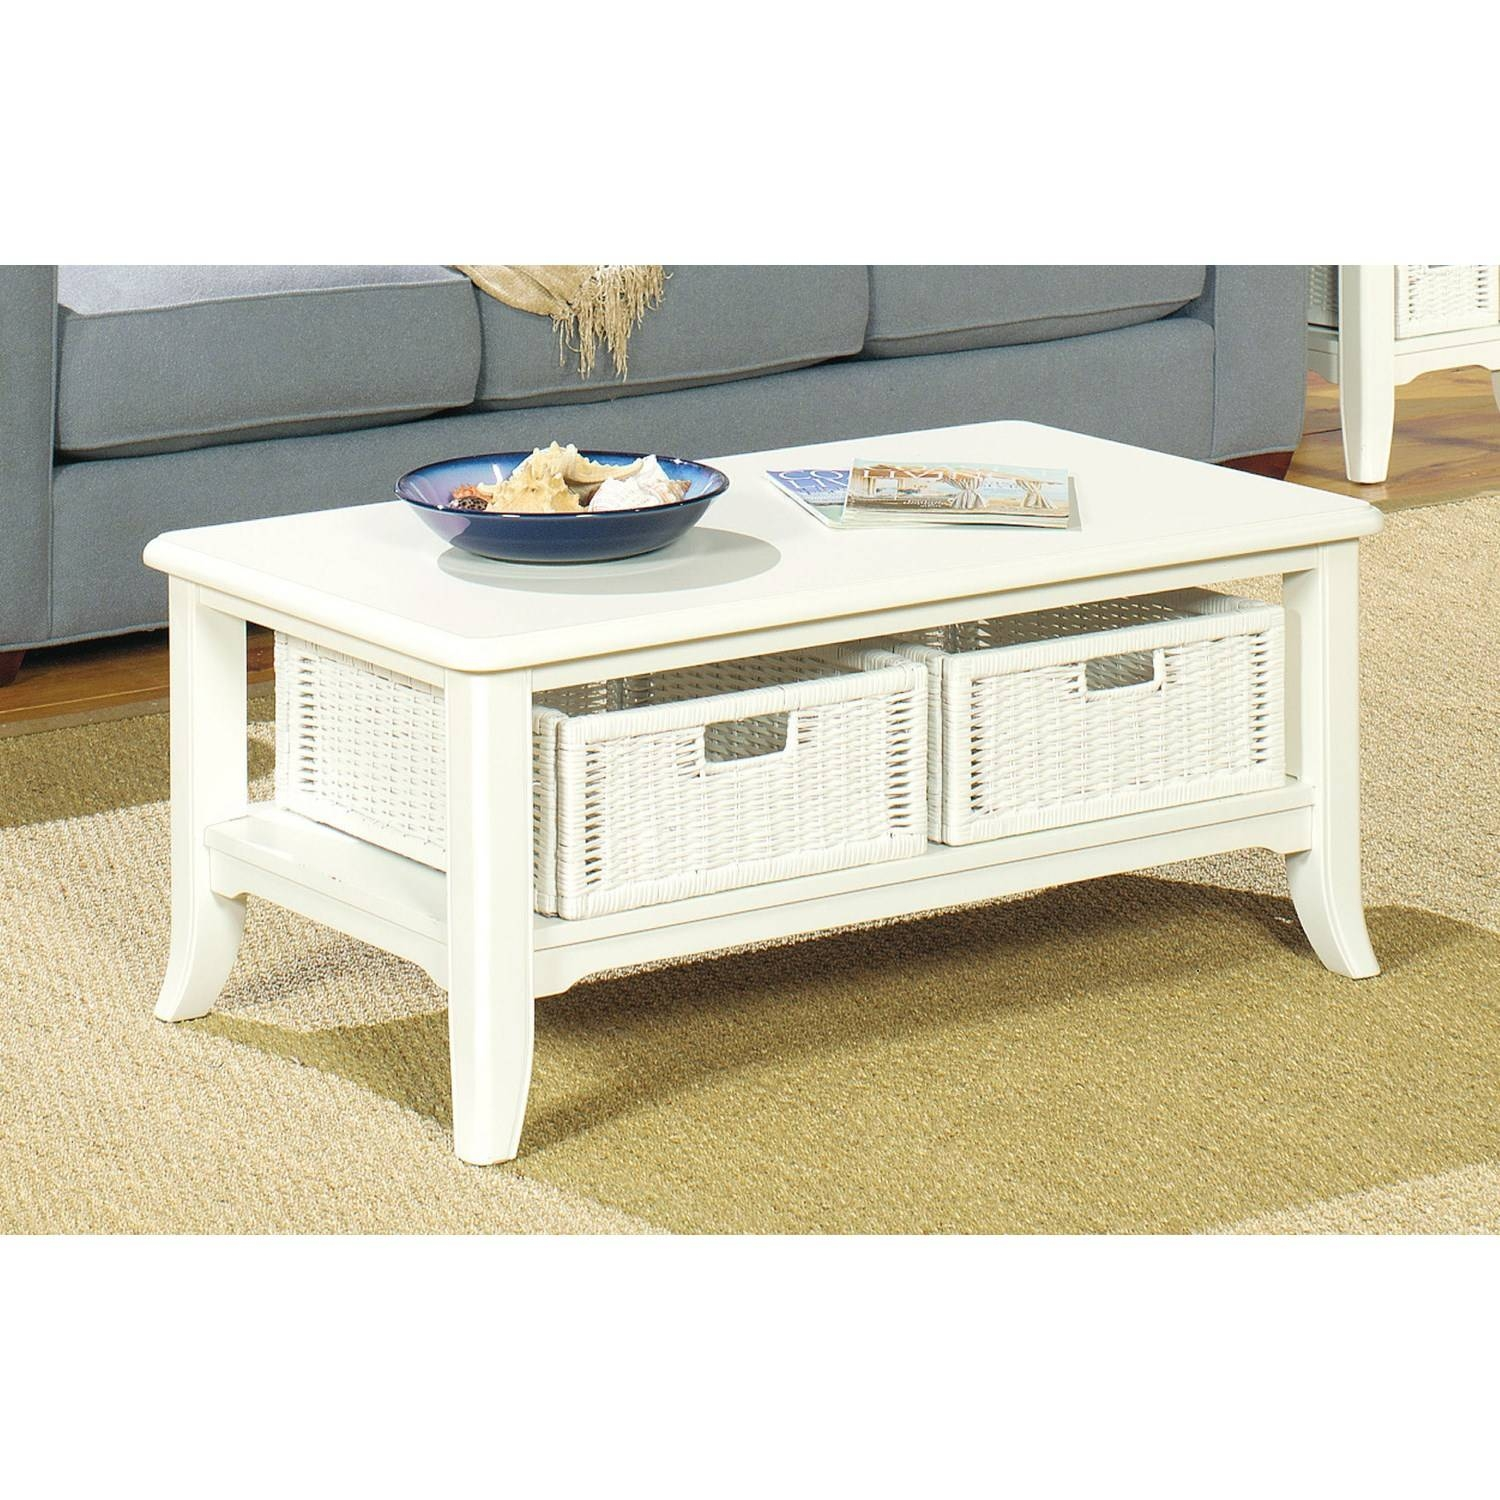 Inspirational White Coffee Table Set 46 With Additional Small Home intended for Retro White Coffee Tables (Image 15 of 30)